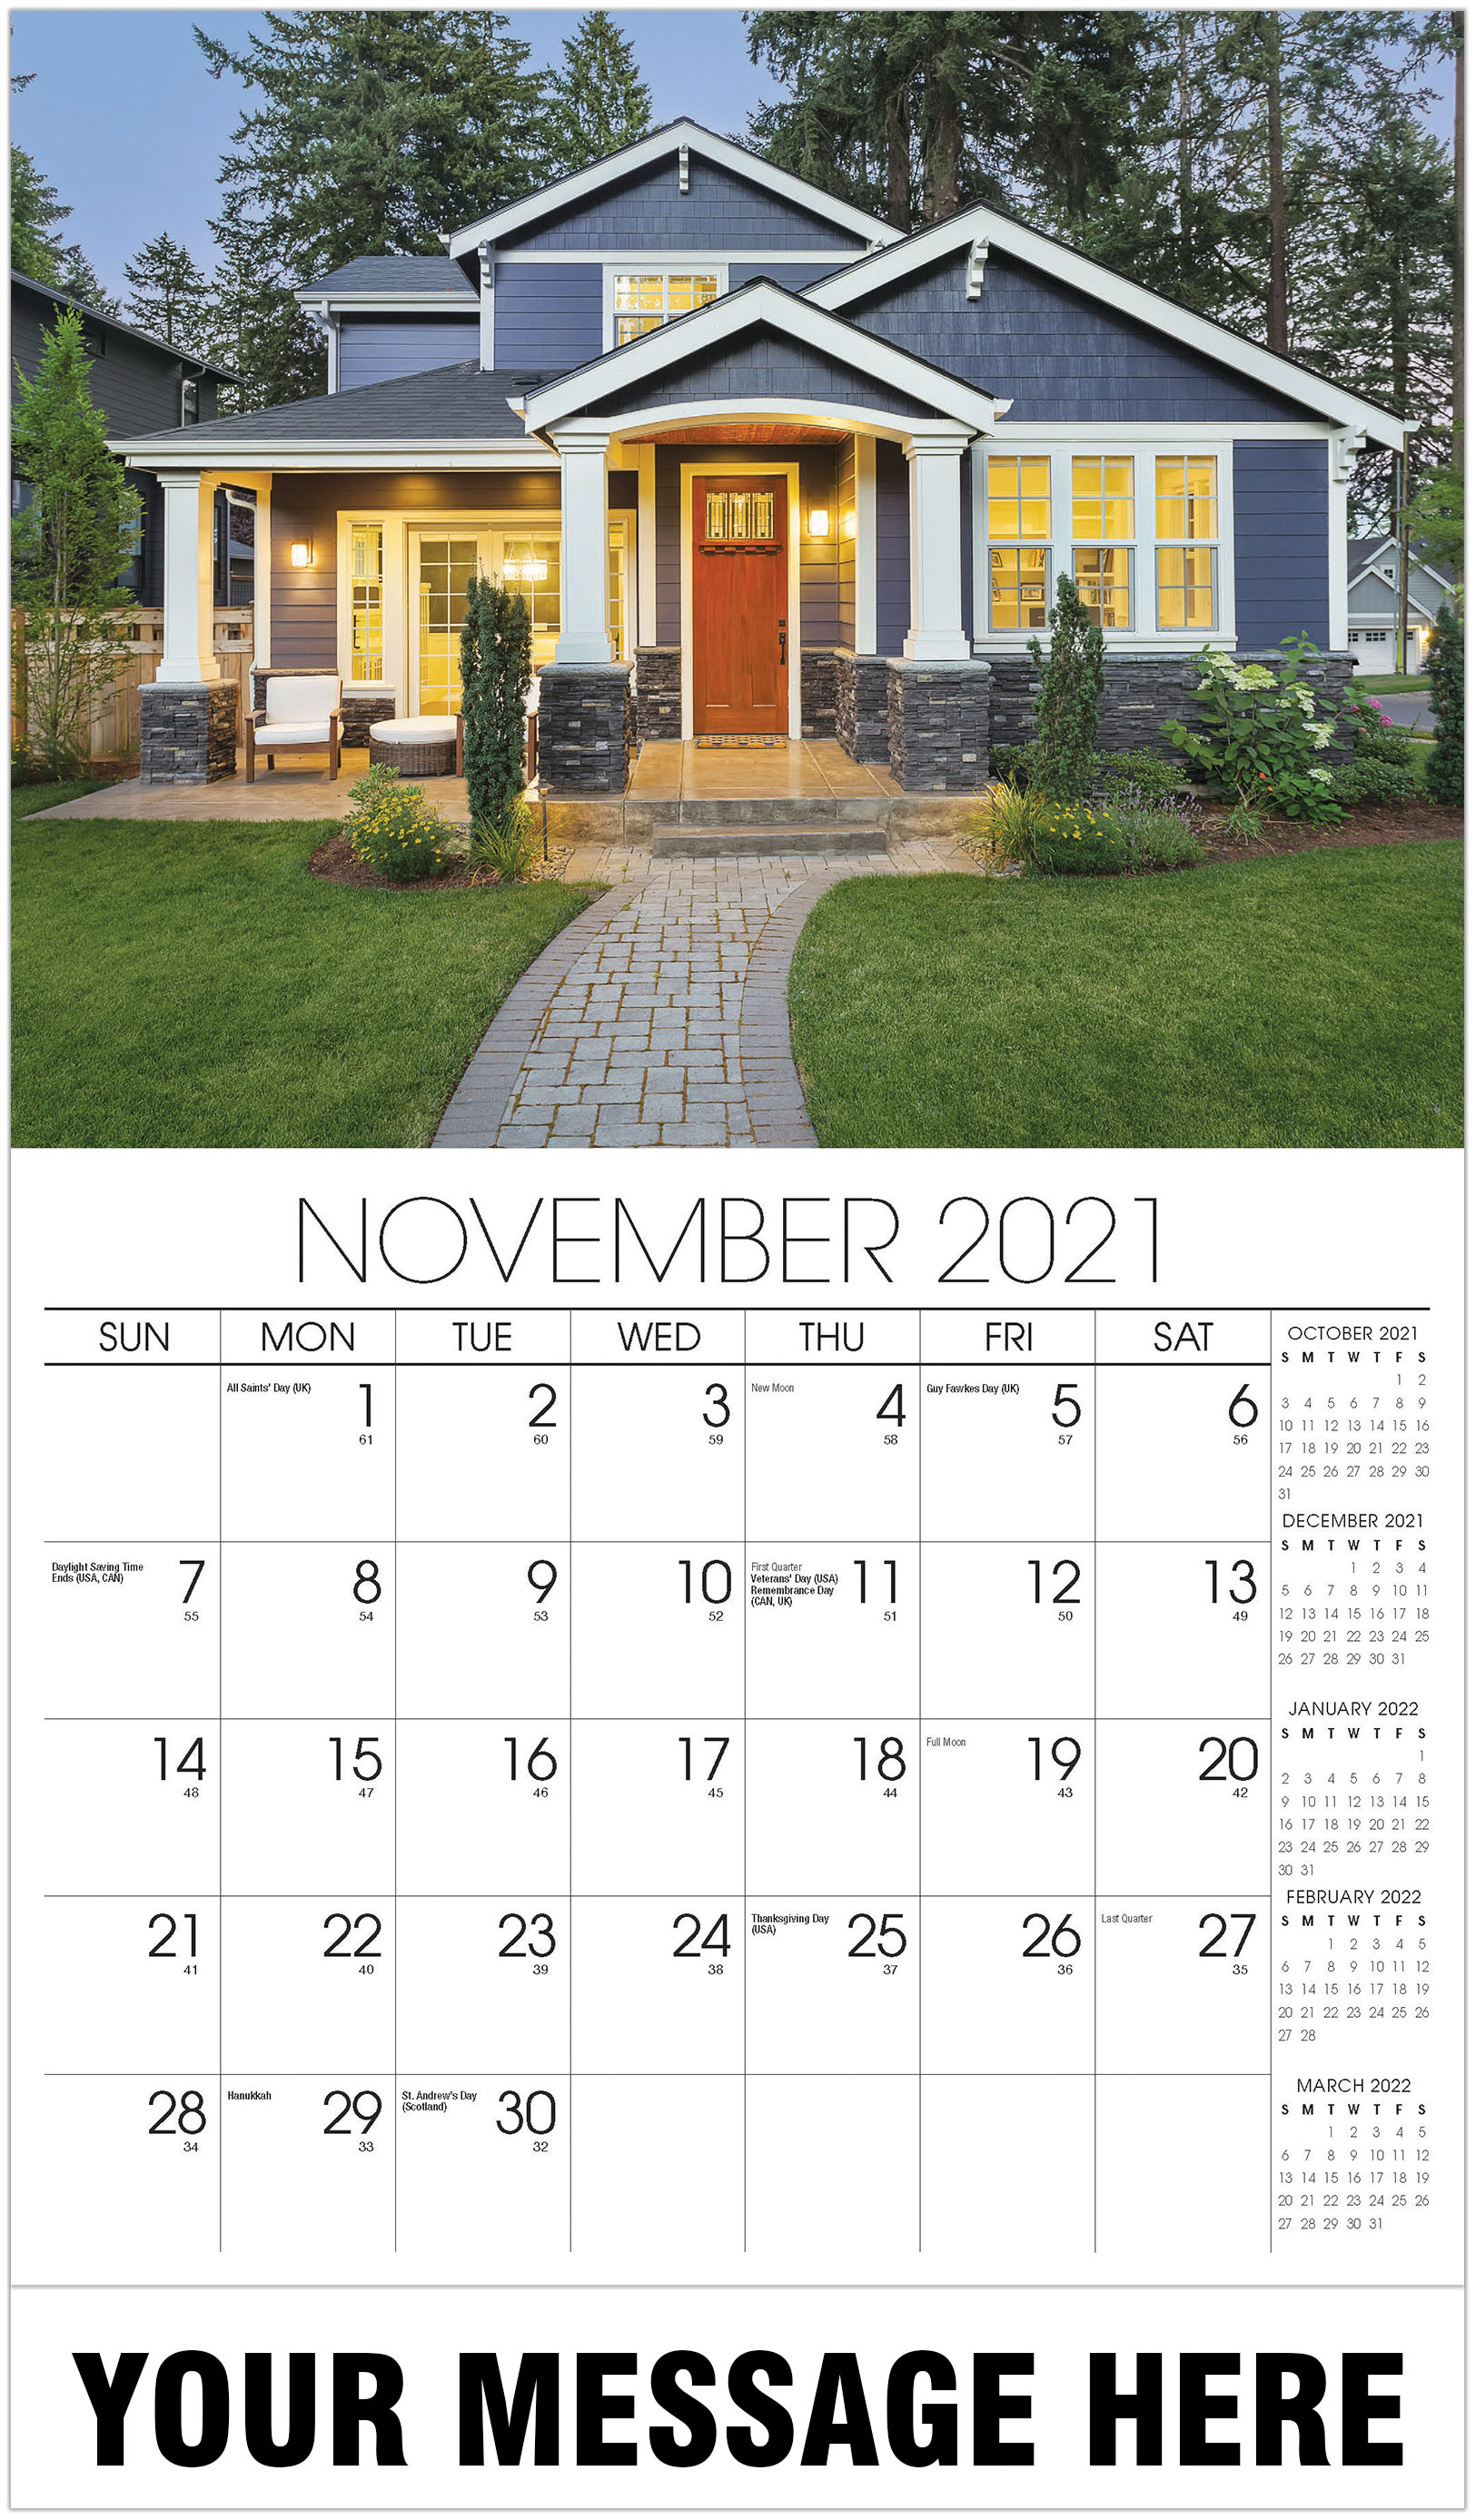 Luxury Homes Calendar - November - Homes 2021 Promotional Calendar